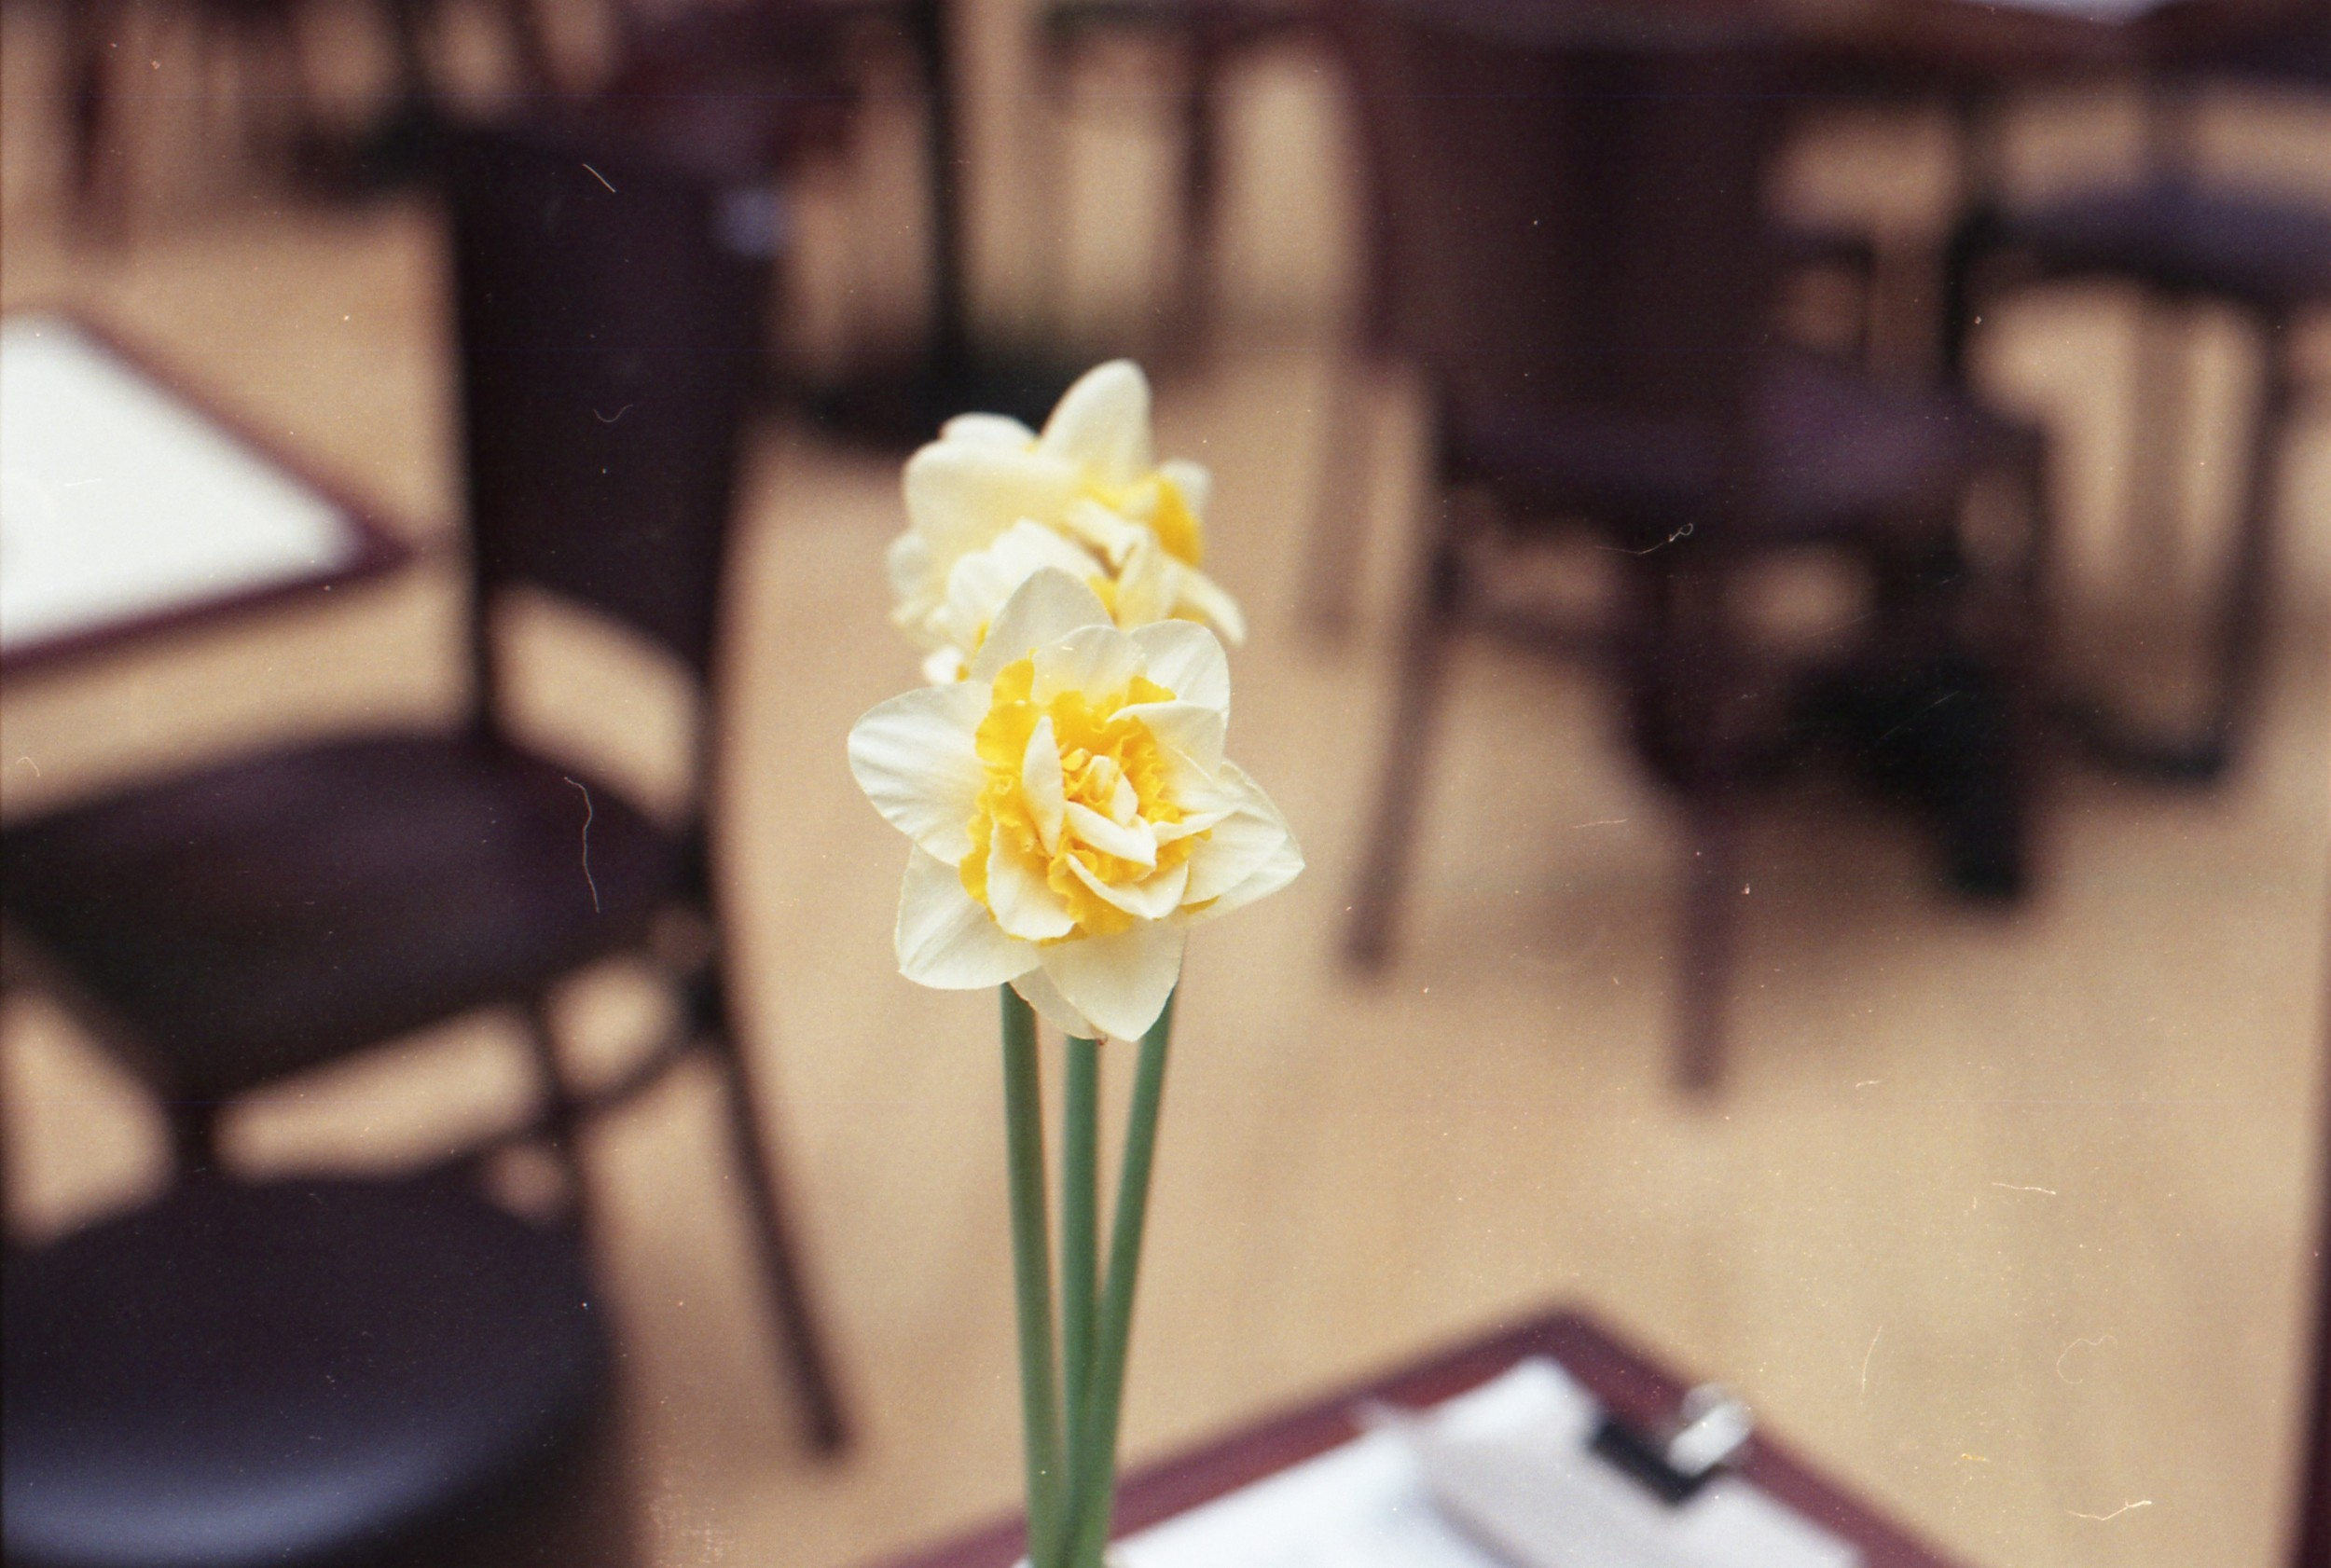 70/366 - I shared a photo of this on Instagram - its the pretty version of a daffodil I've ever seen. It doesn't even look real!